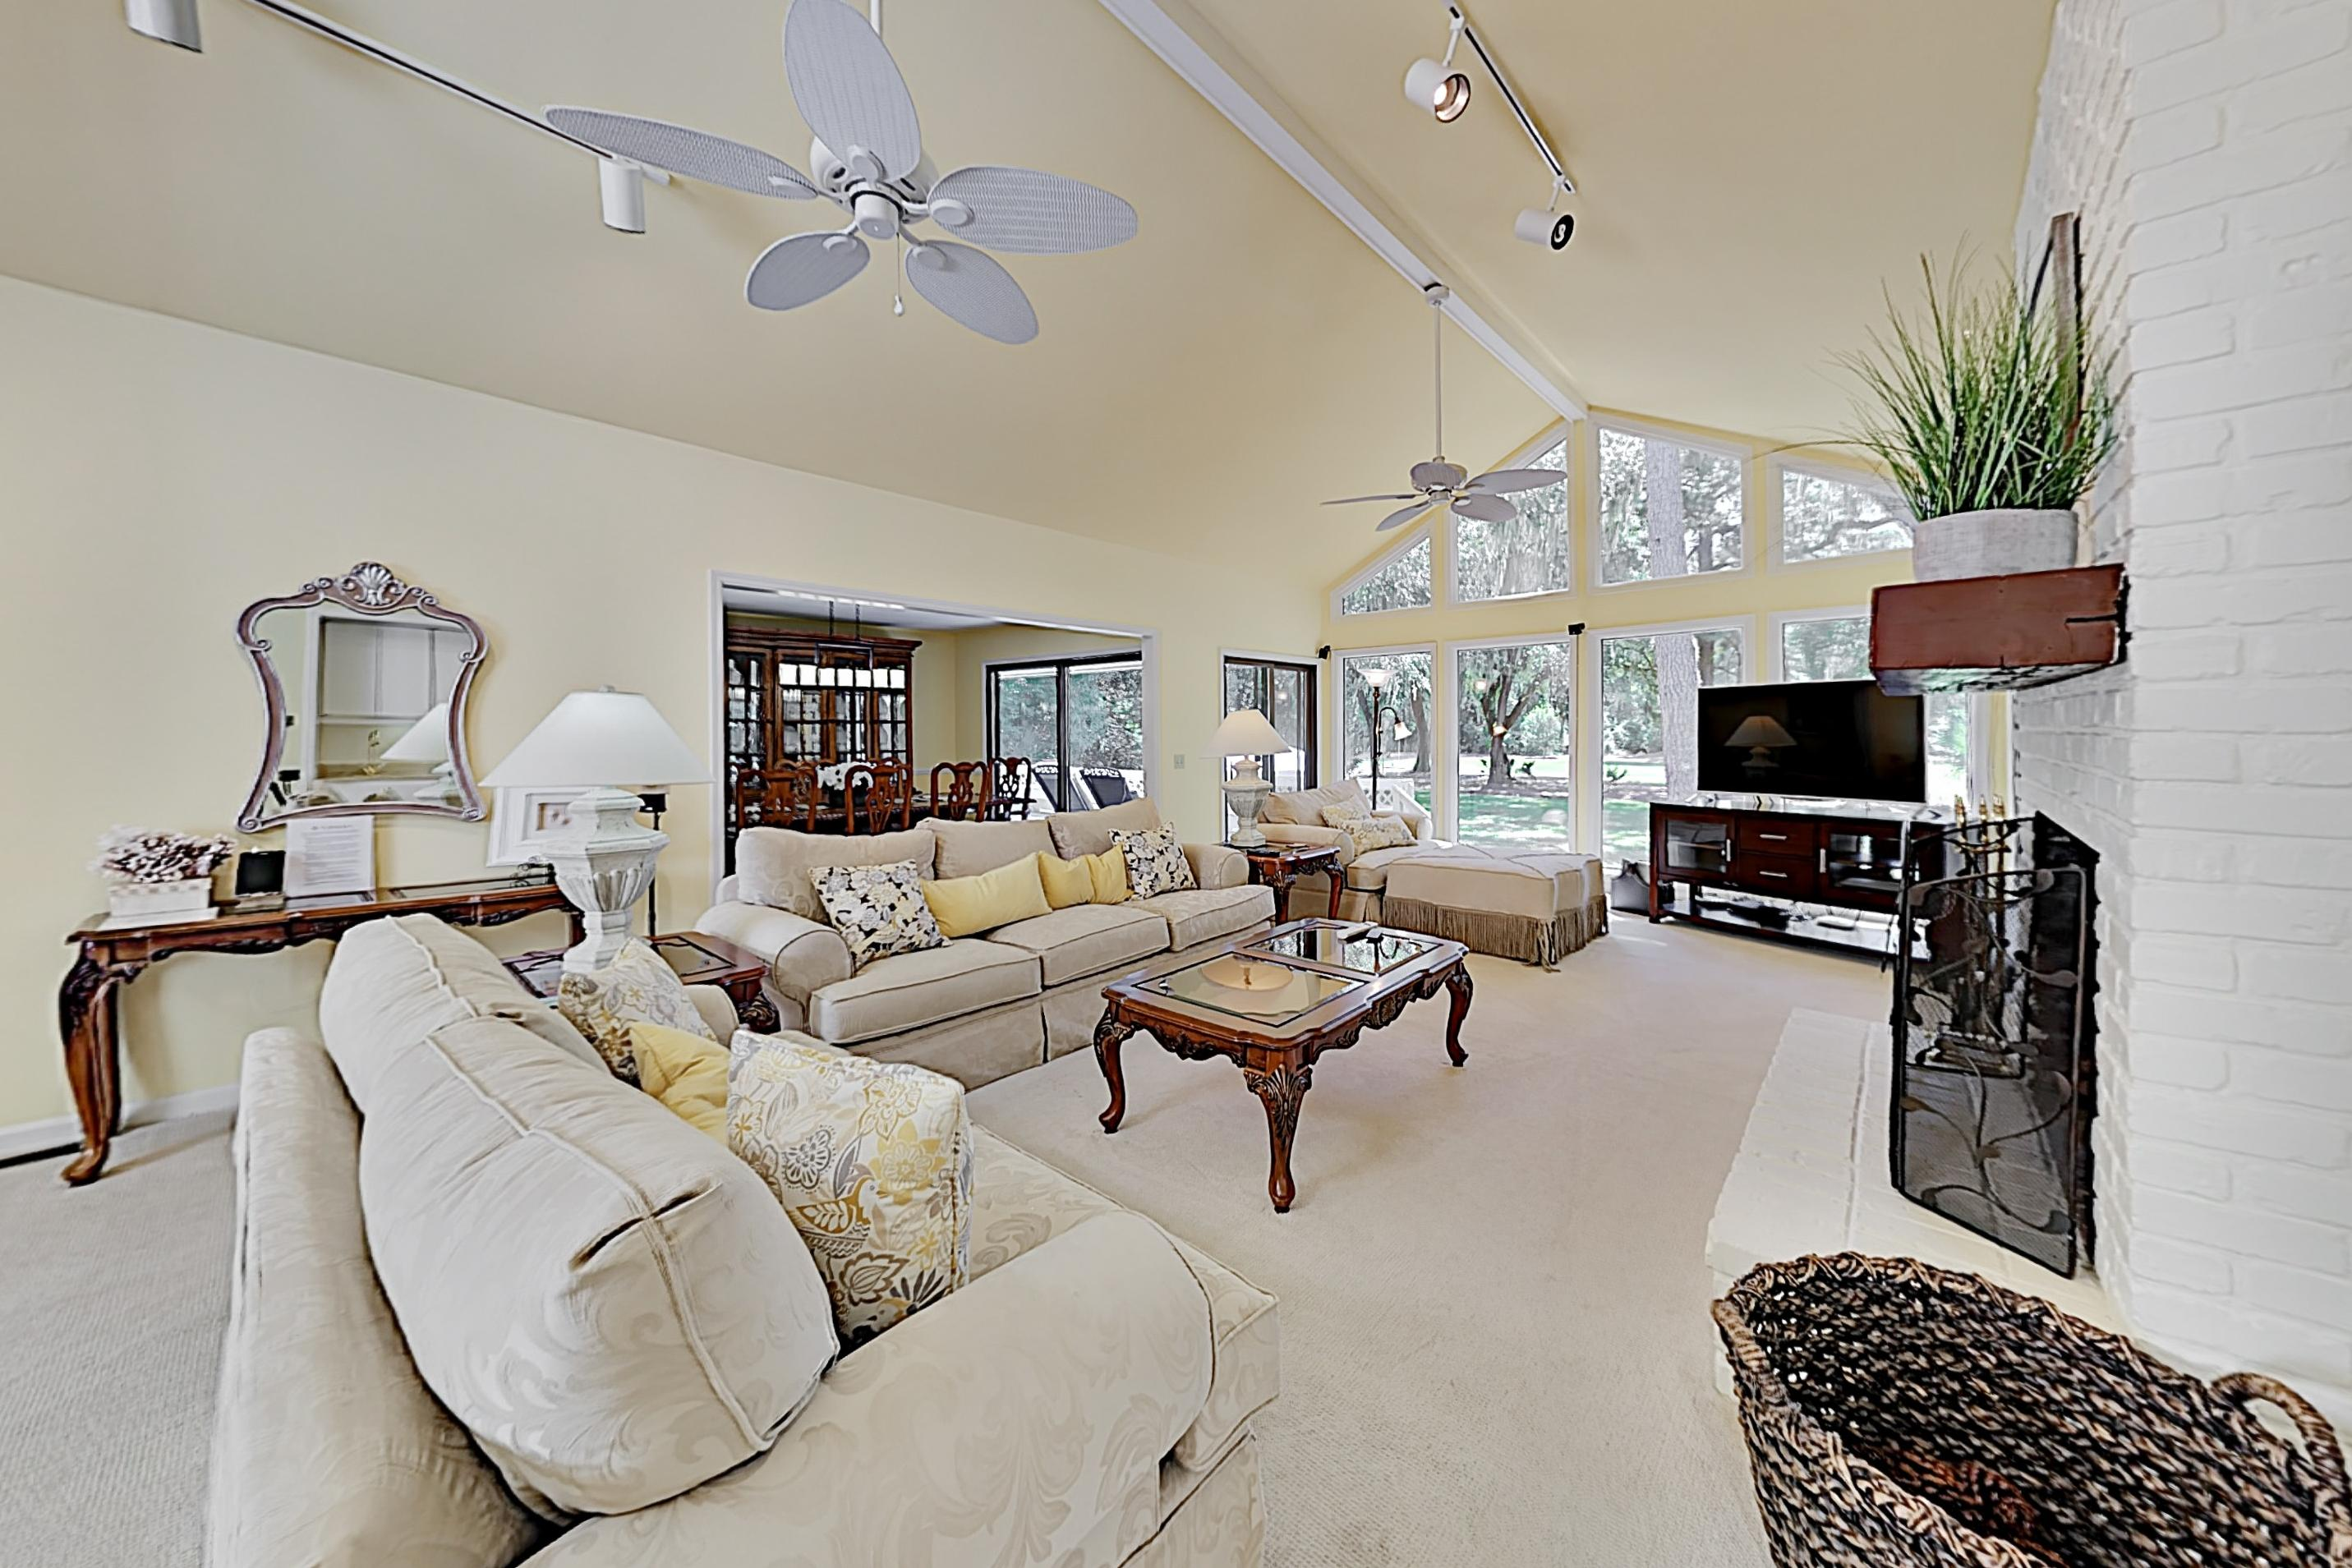 Property Image 2 - Expansive Bright Home with Gazebo in Hilton Head